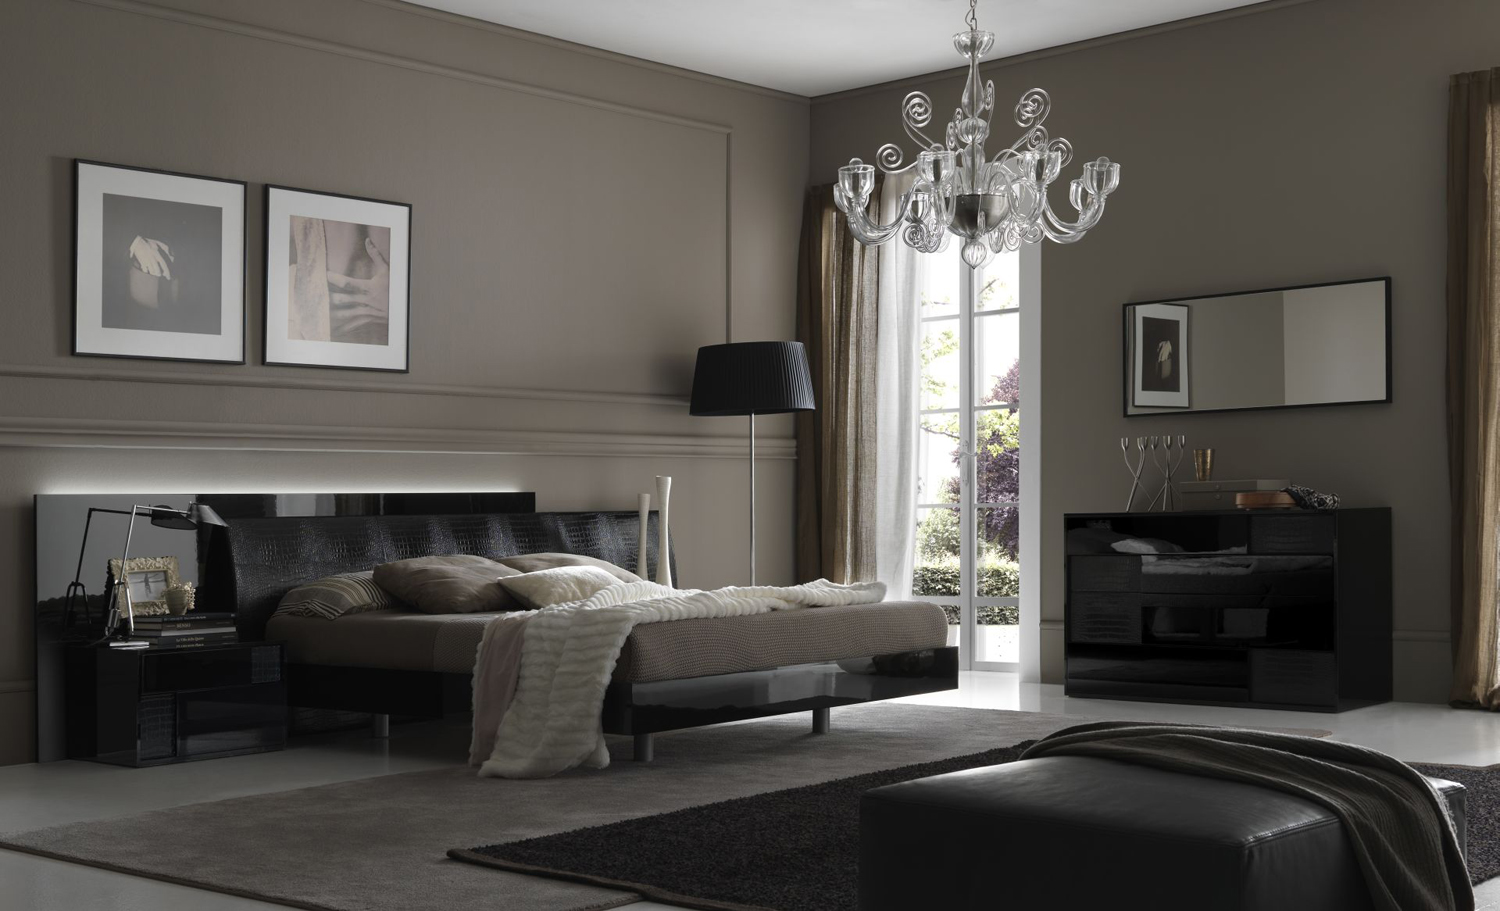 Bedroom decorating ideas from evinco for Modern bedroom interior designs